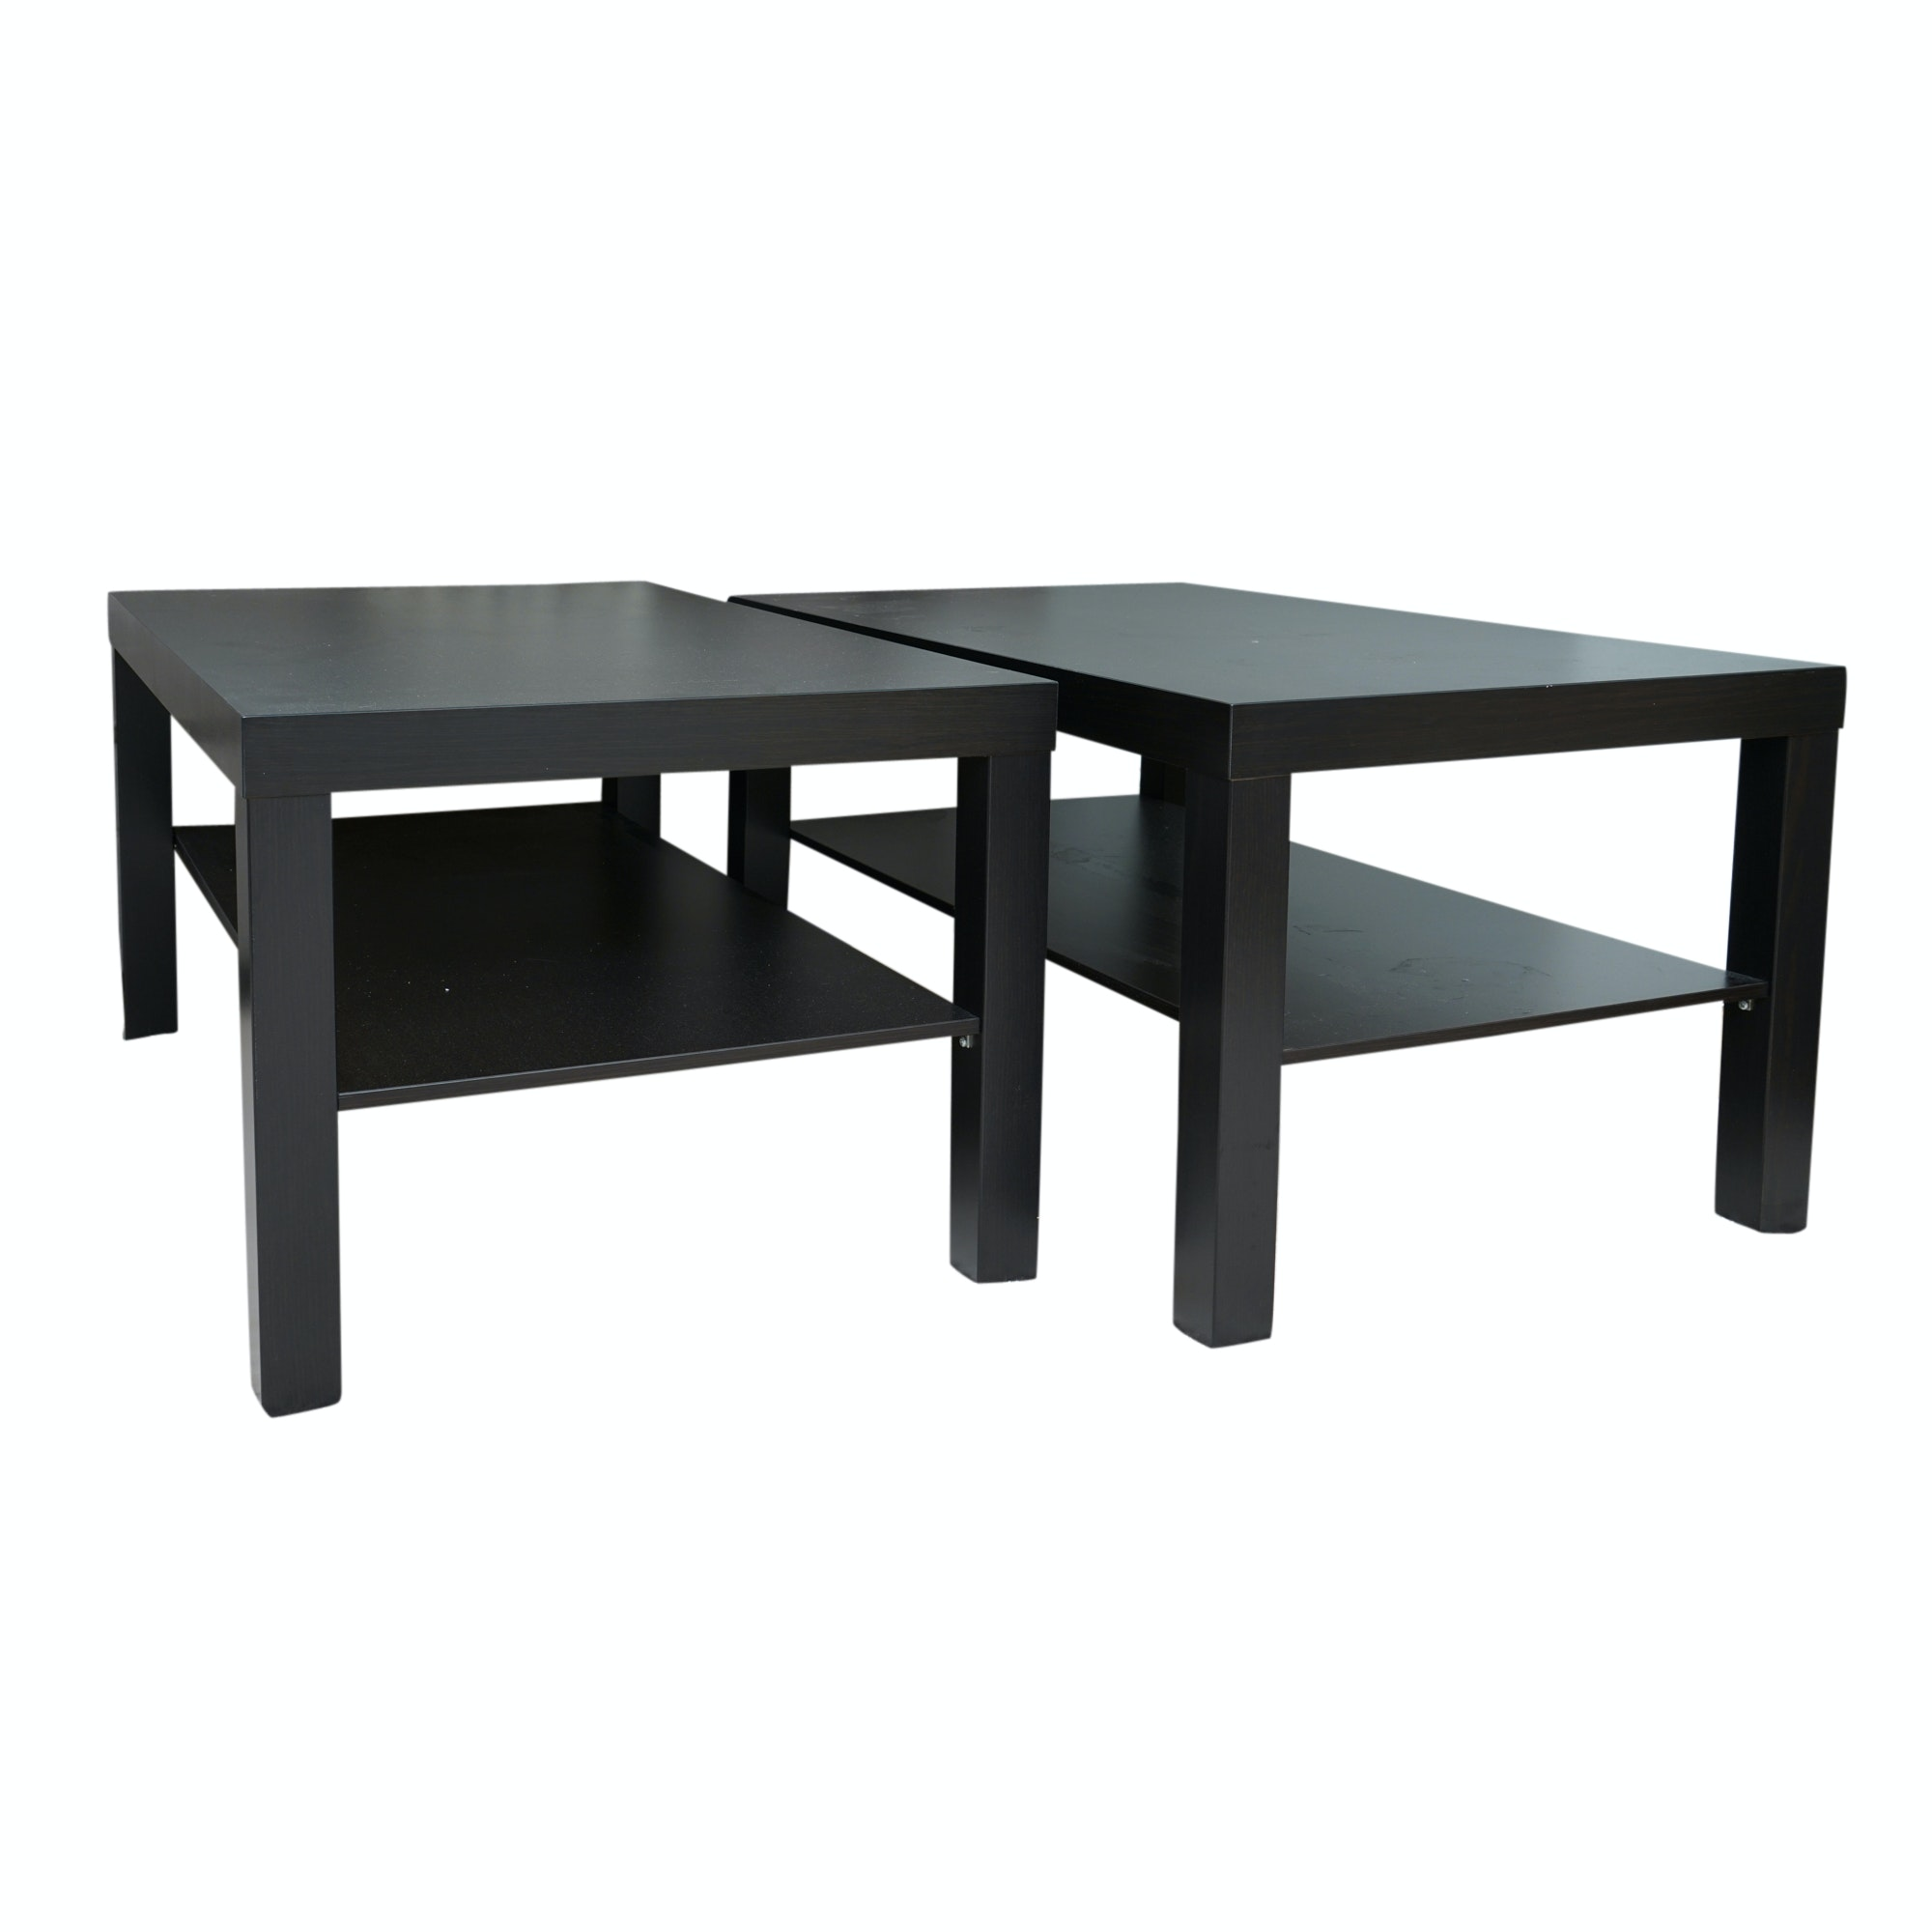 "Pair of Black Finished ""Lack"" Side Tables by IKEA"